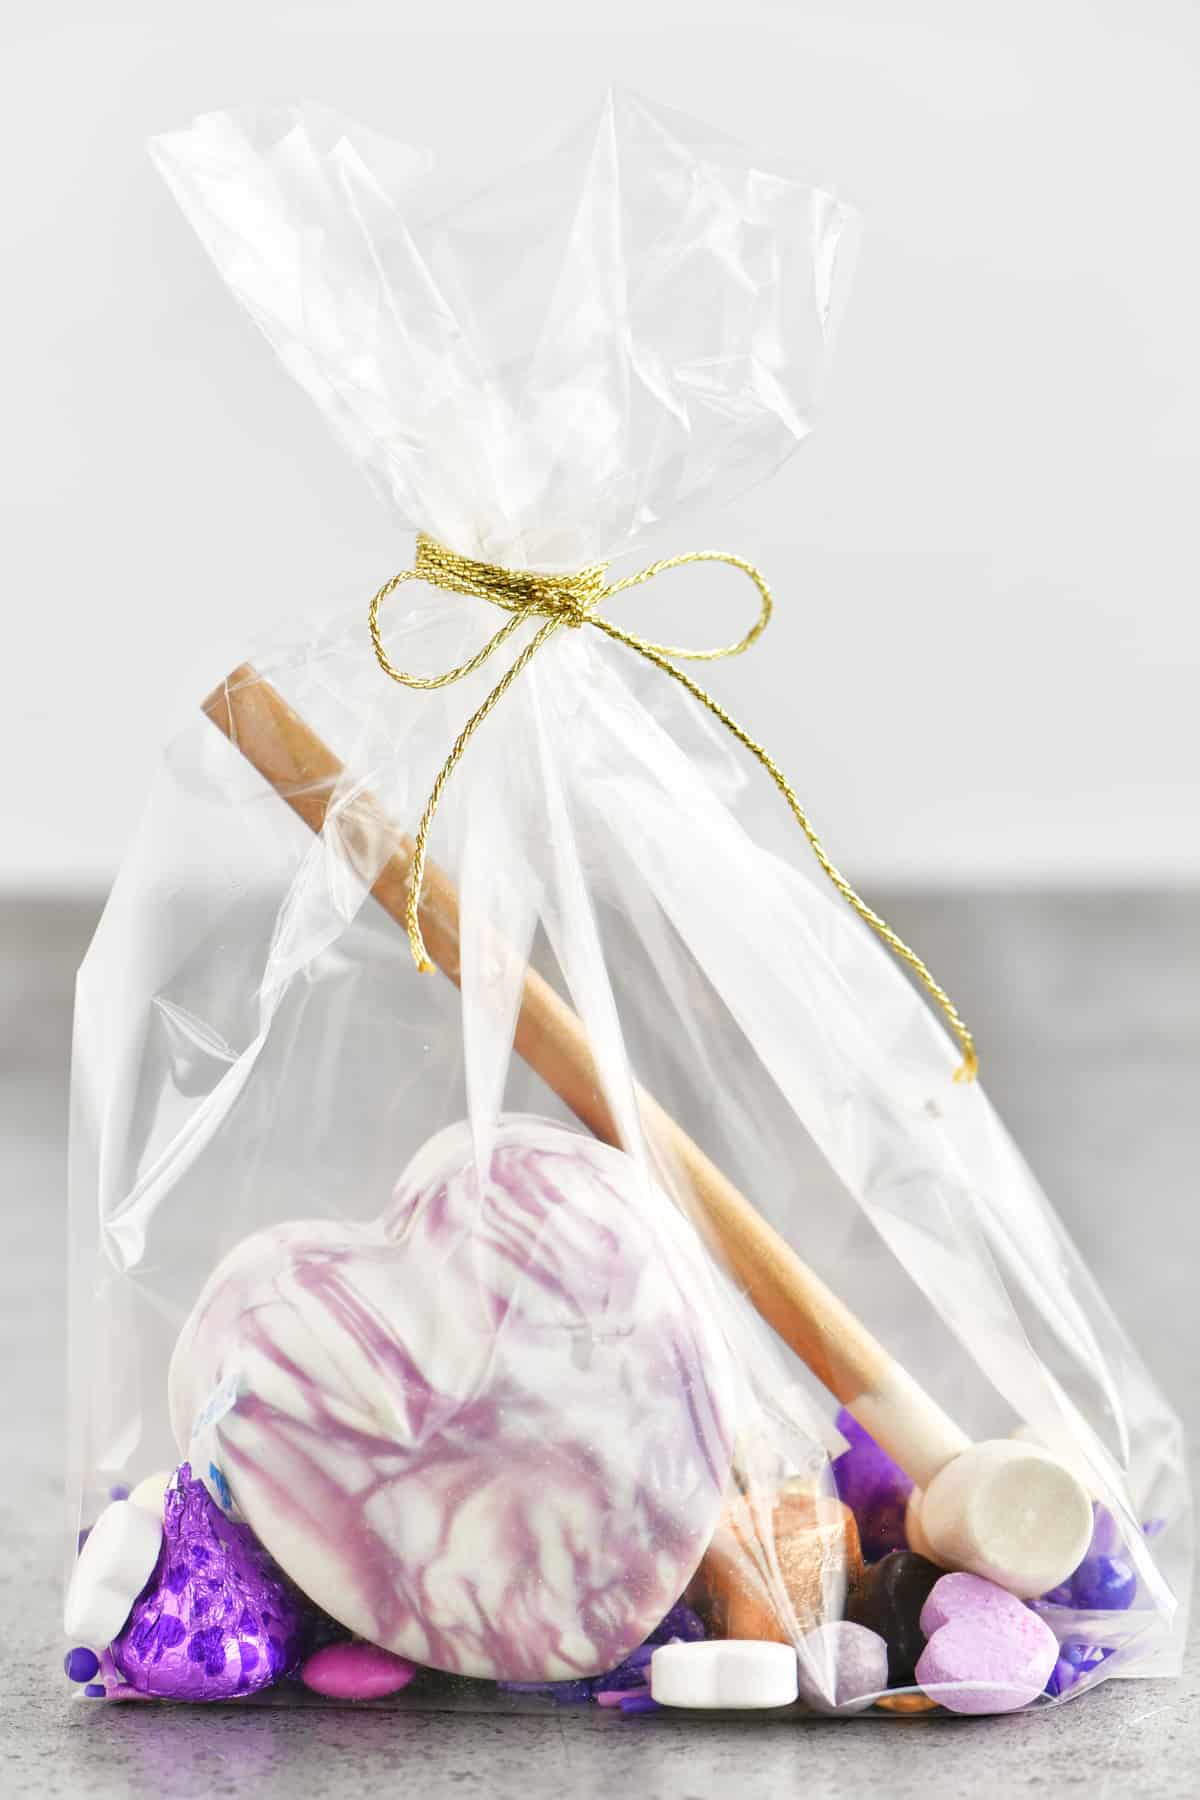 purple and white swirled breakable chocolate heart in a gift bag